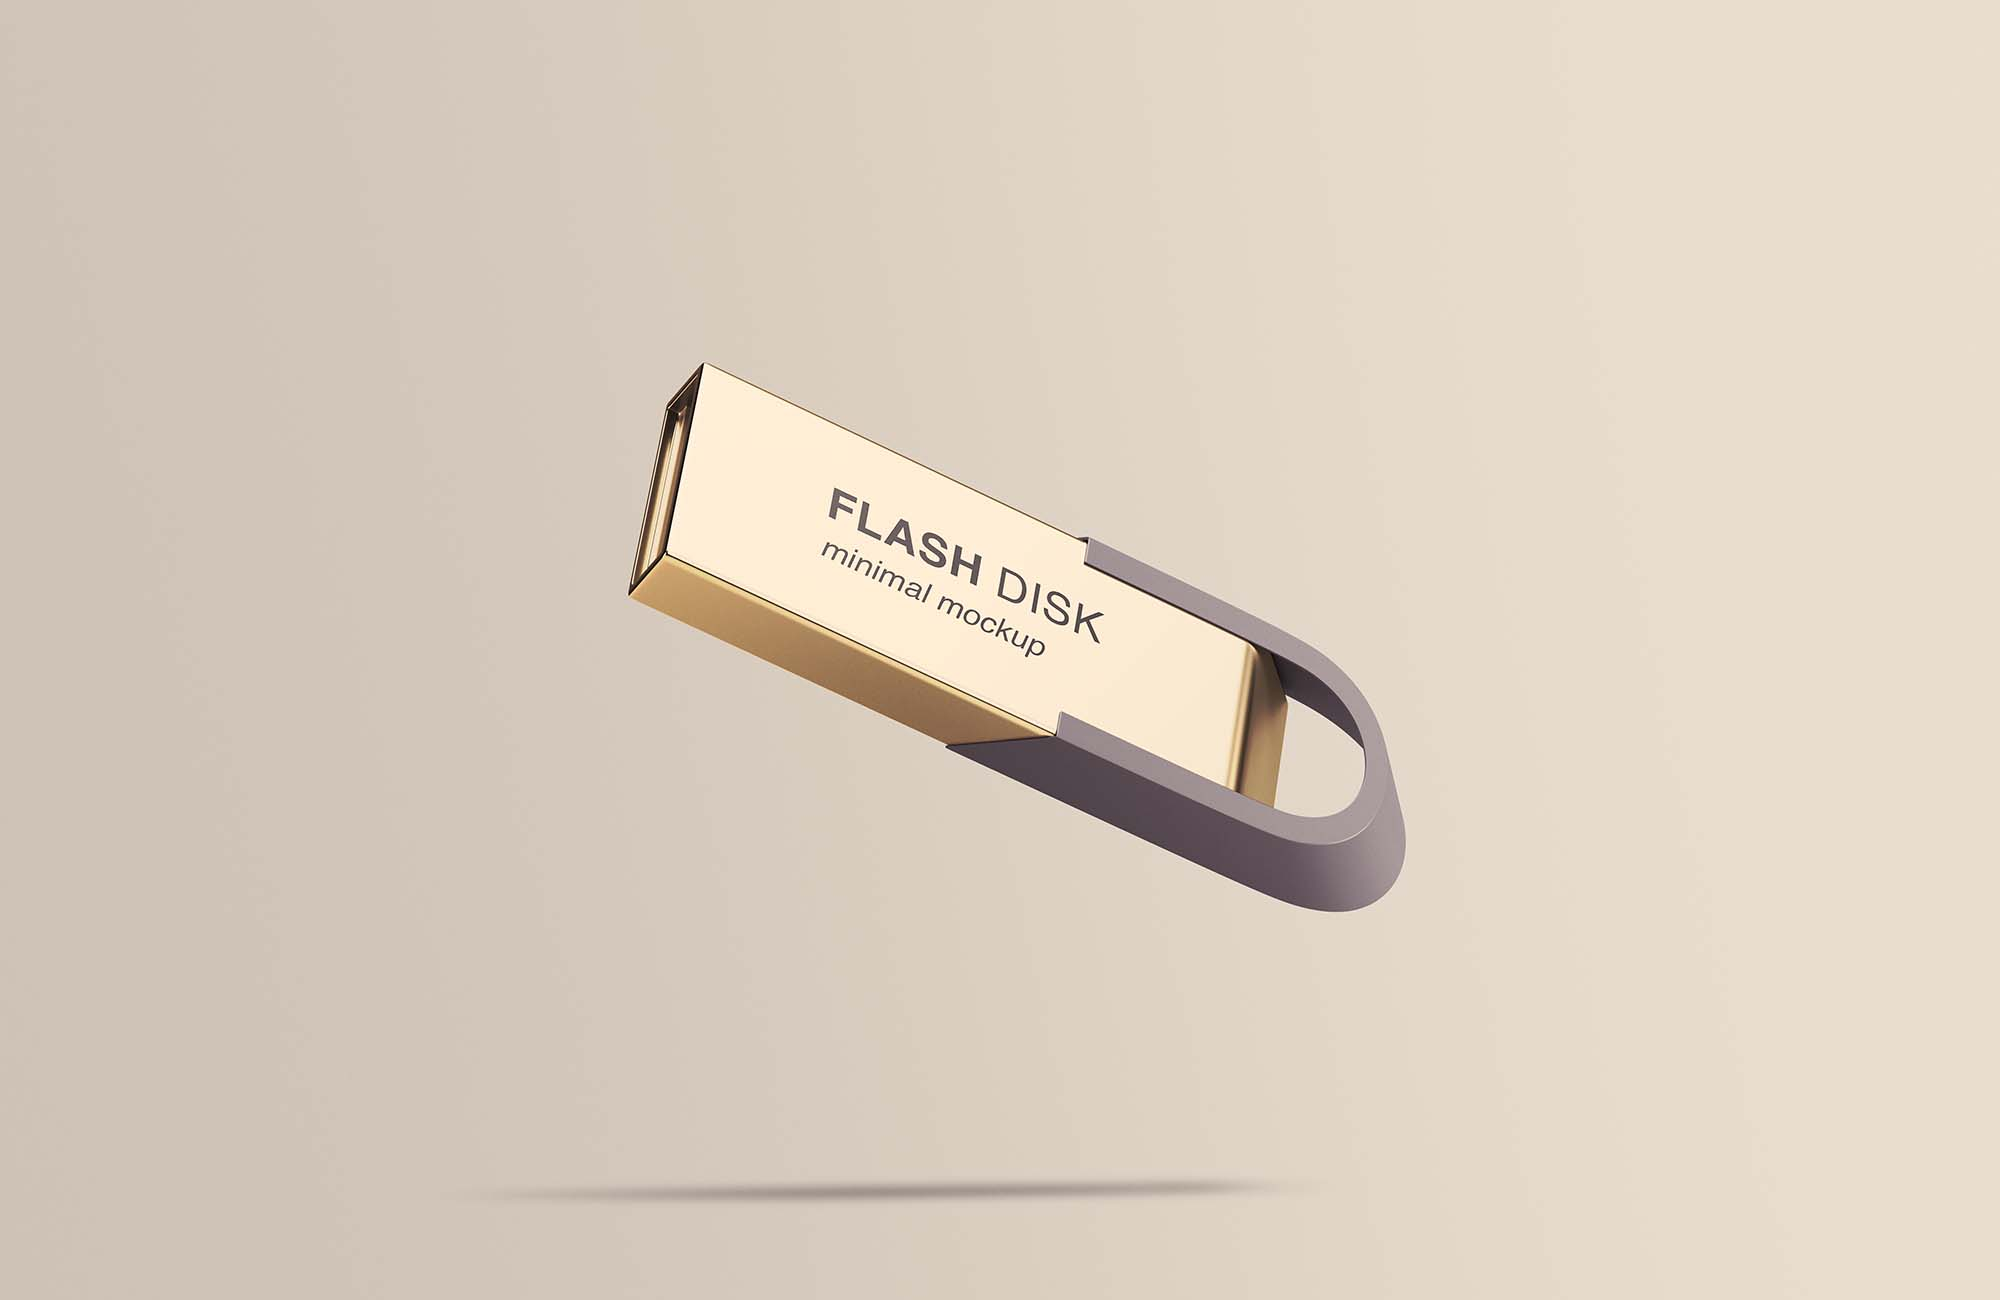 Flying Flash Disk Mockup